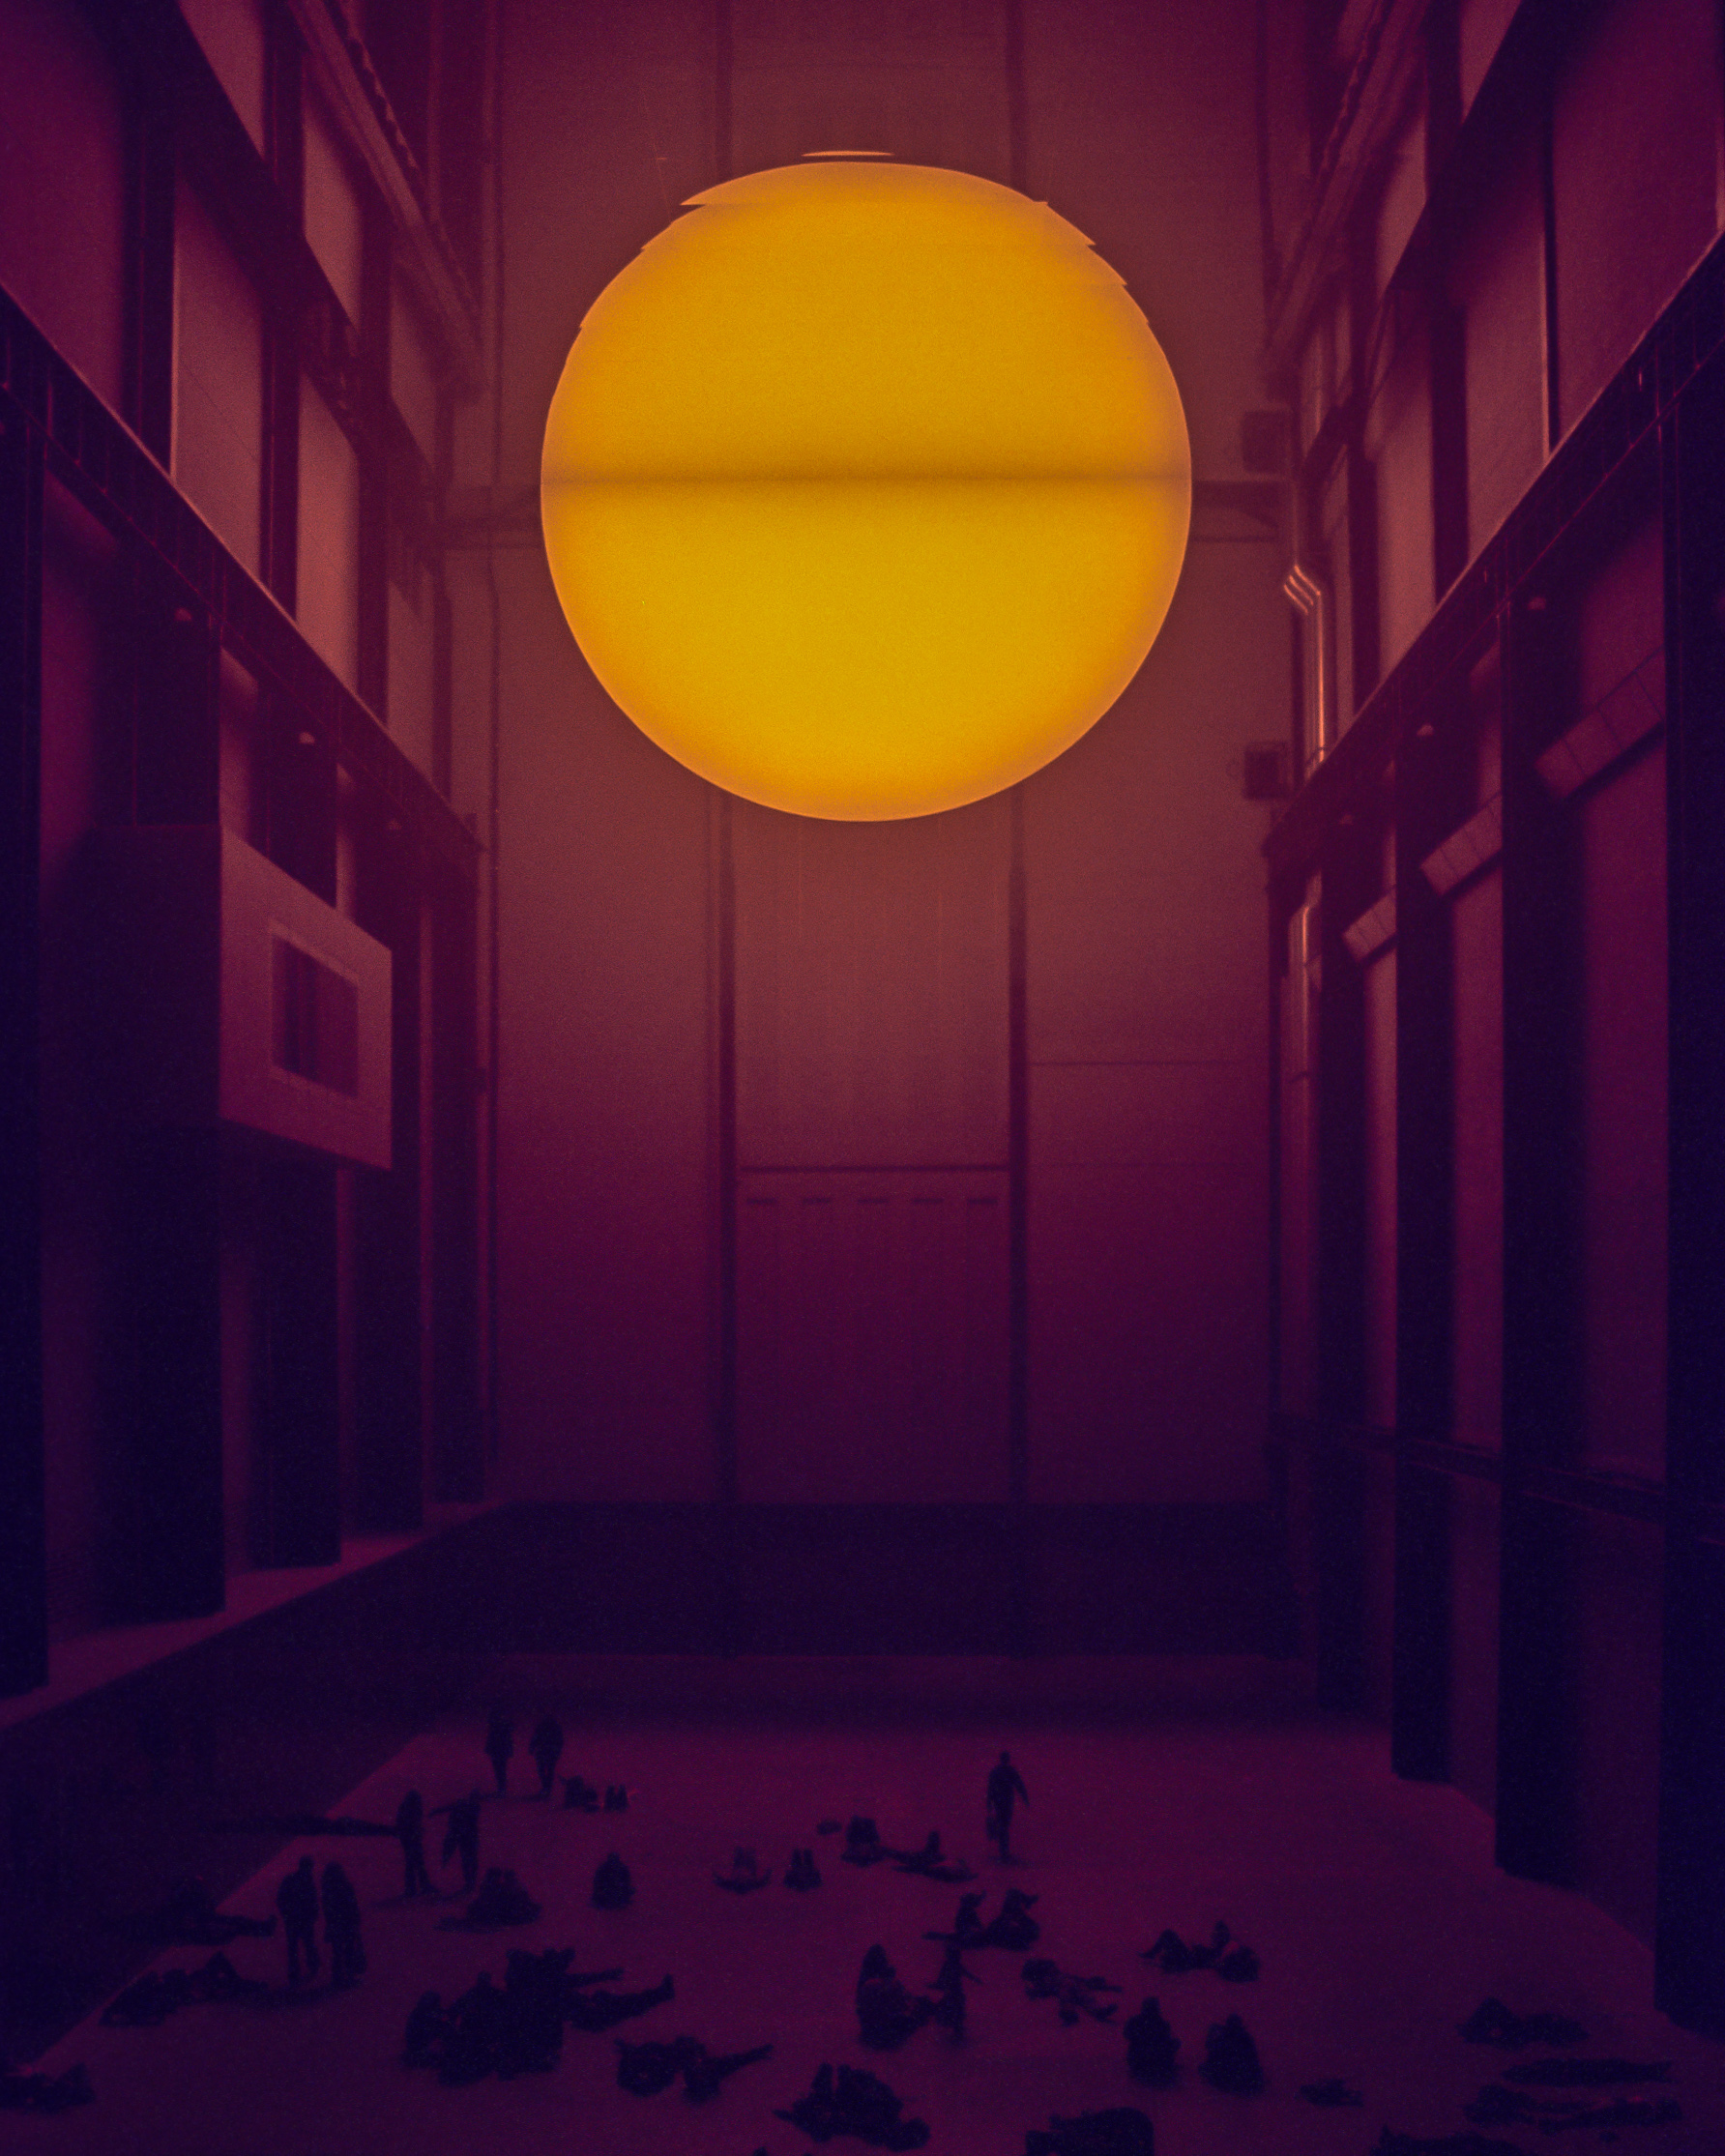 A synthetic sun shining on a crowd in the Tate Modern museum in London, England